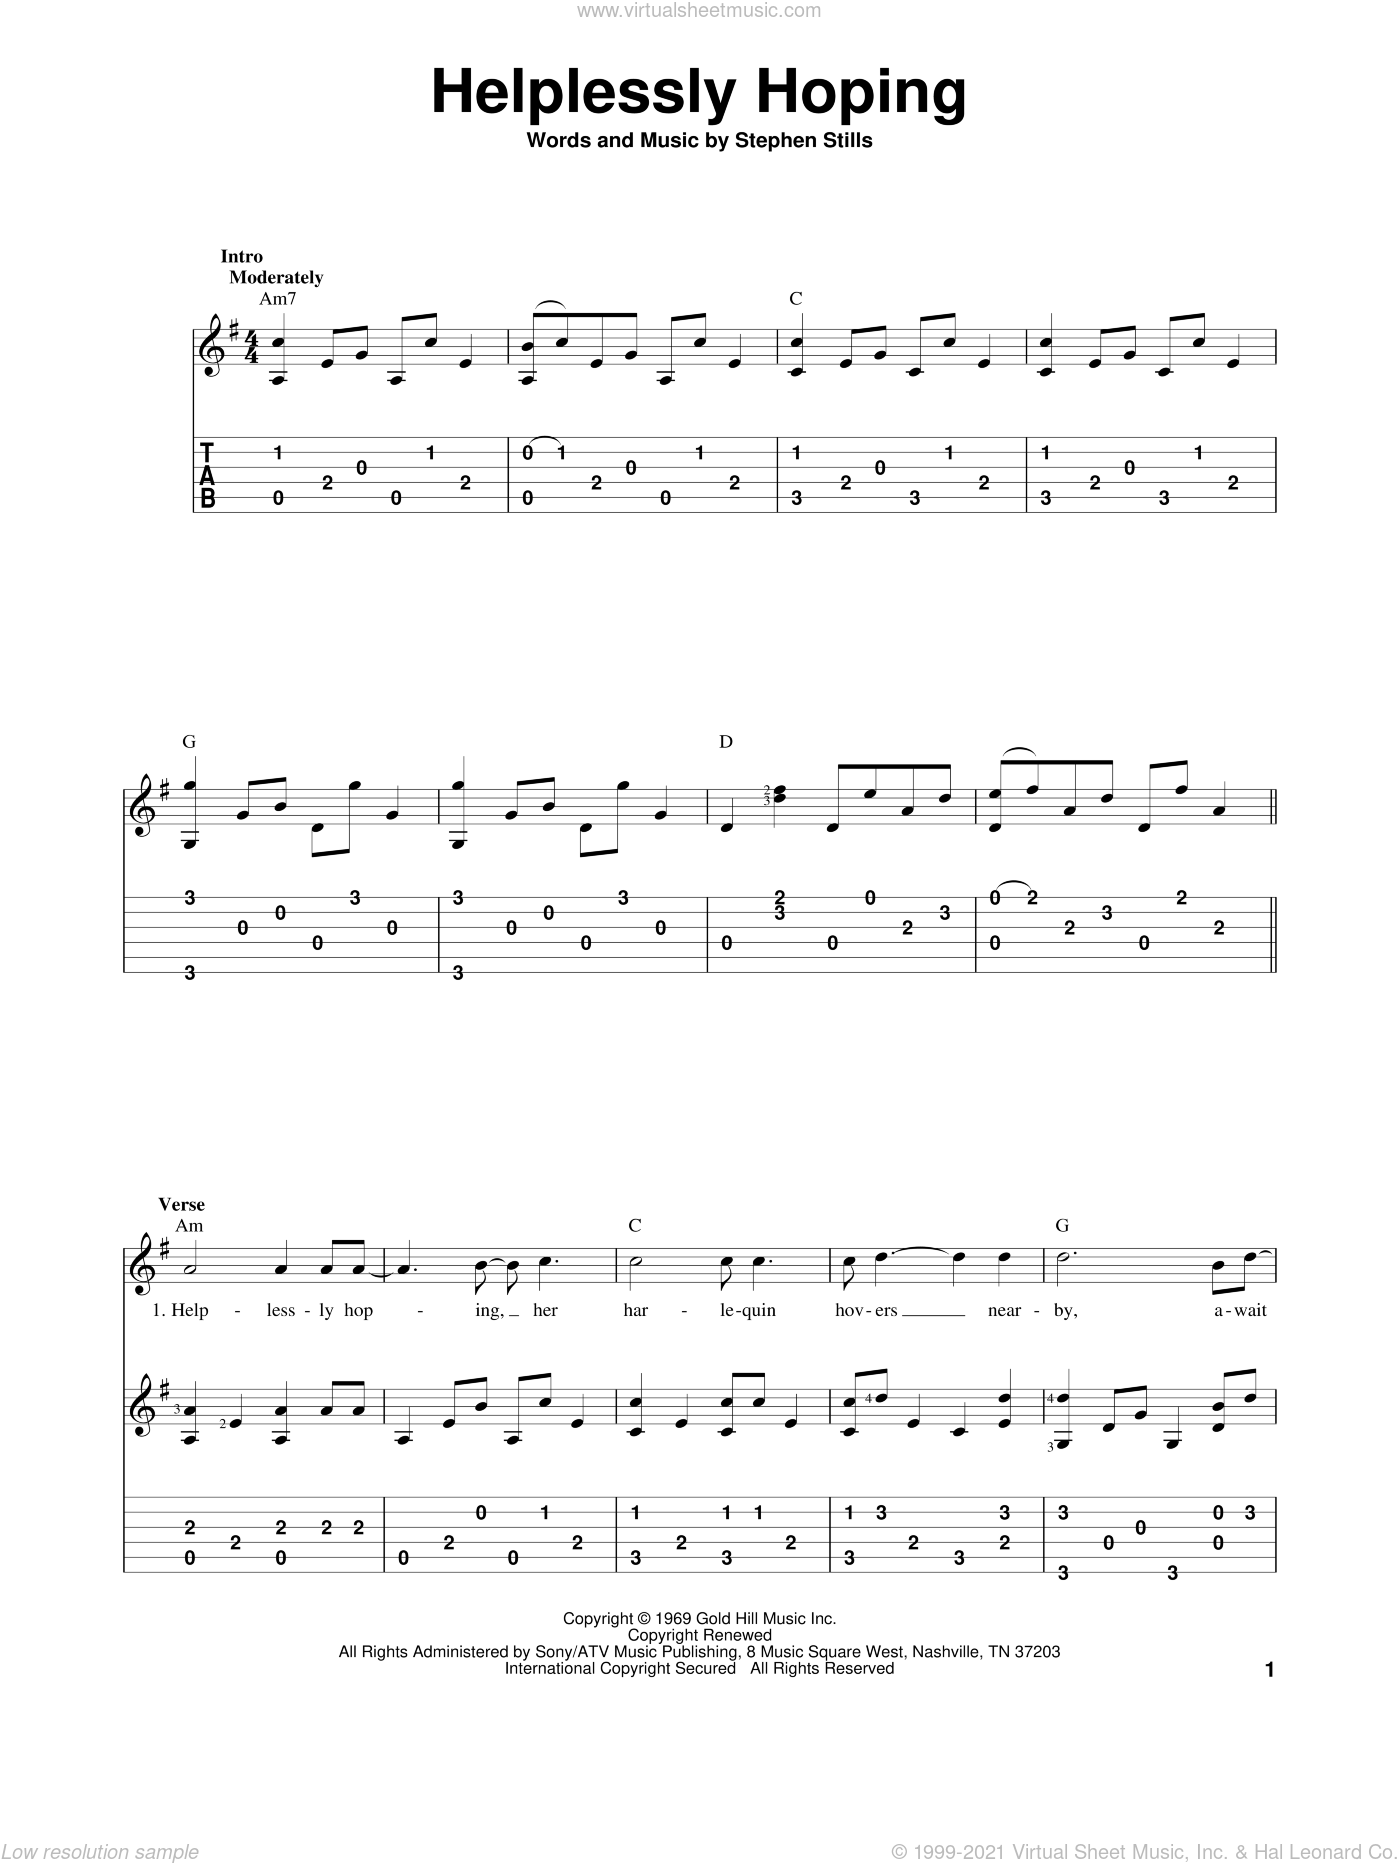 Helplessly Hoping sheet music for guitar solo by Crosby, Stills & Nash, Crosby, Stills and Nash and Stephen Stills, intermediate skill level